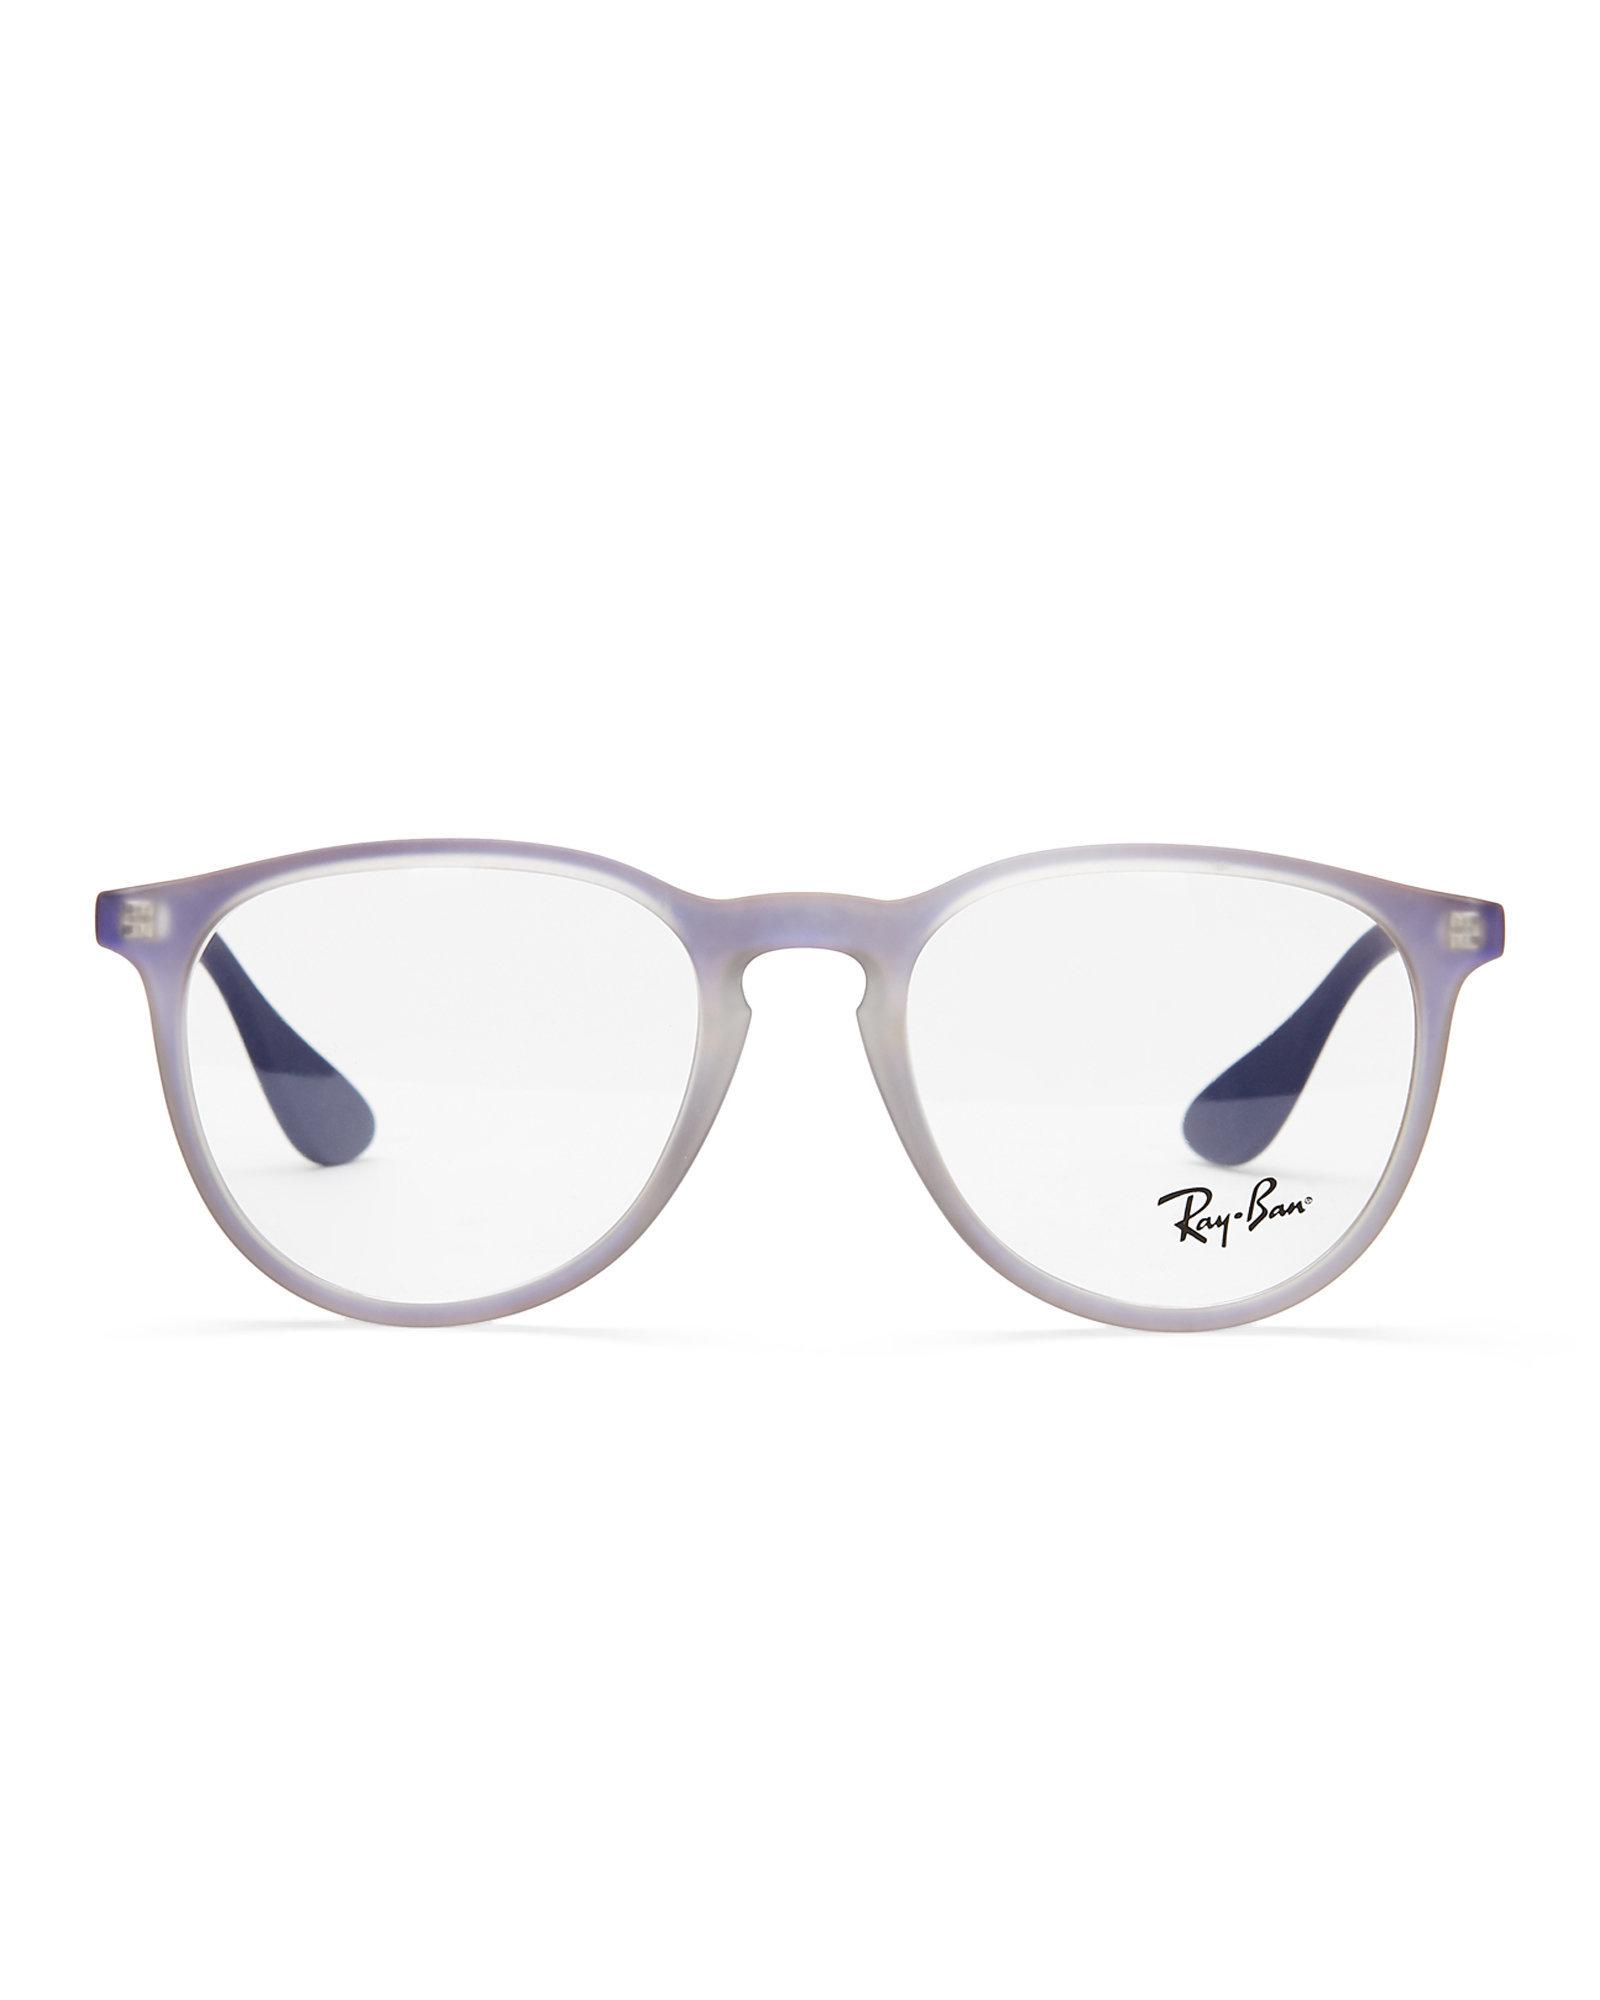 Lyst - Ray-Ban Rb7046 Purple Round Optical Frames